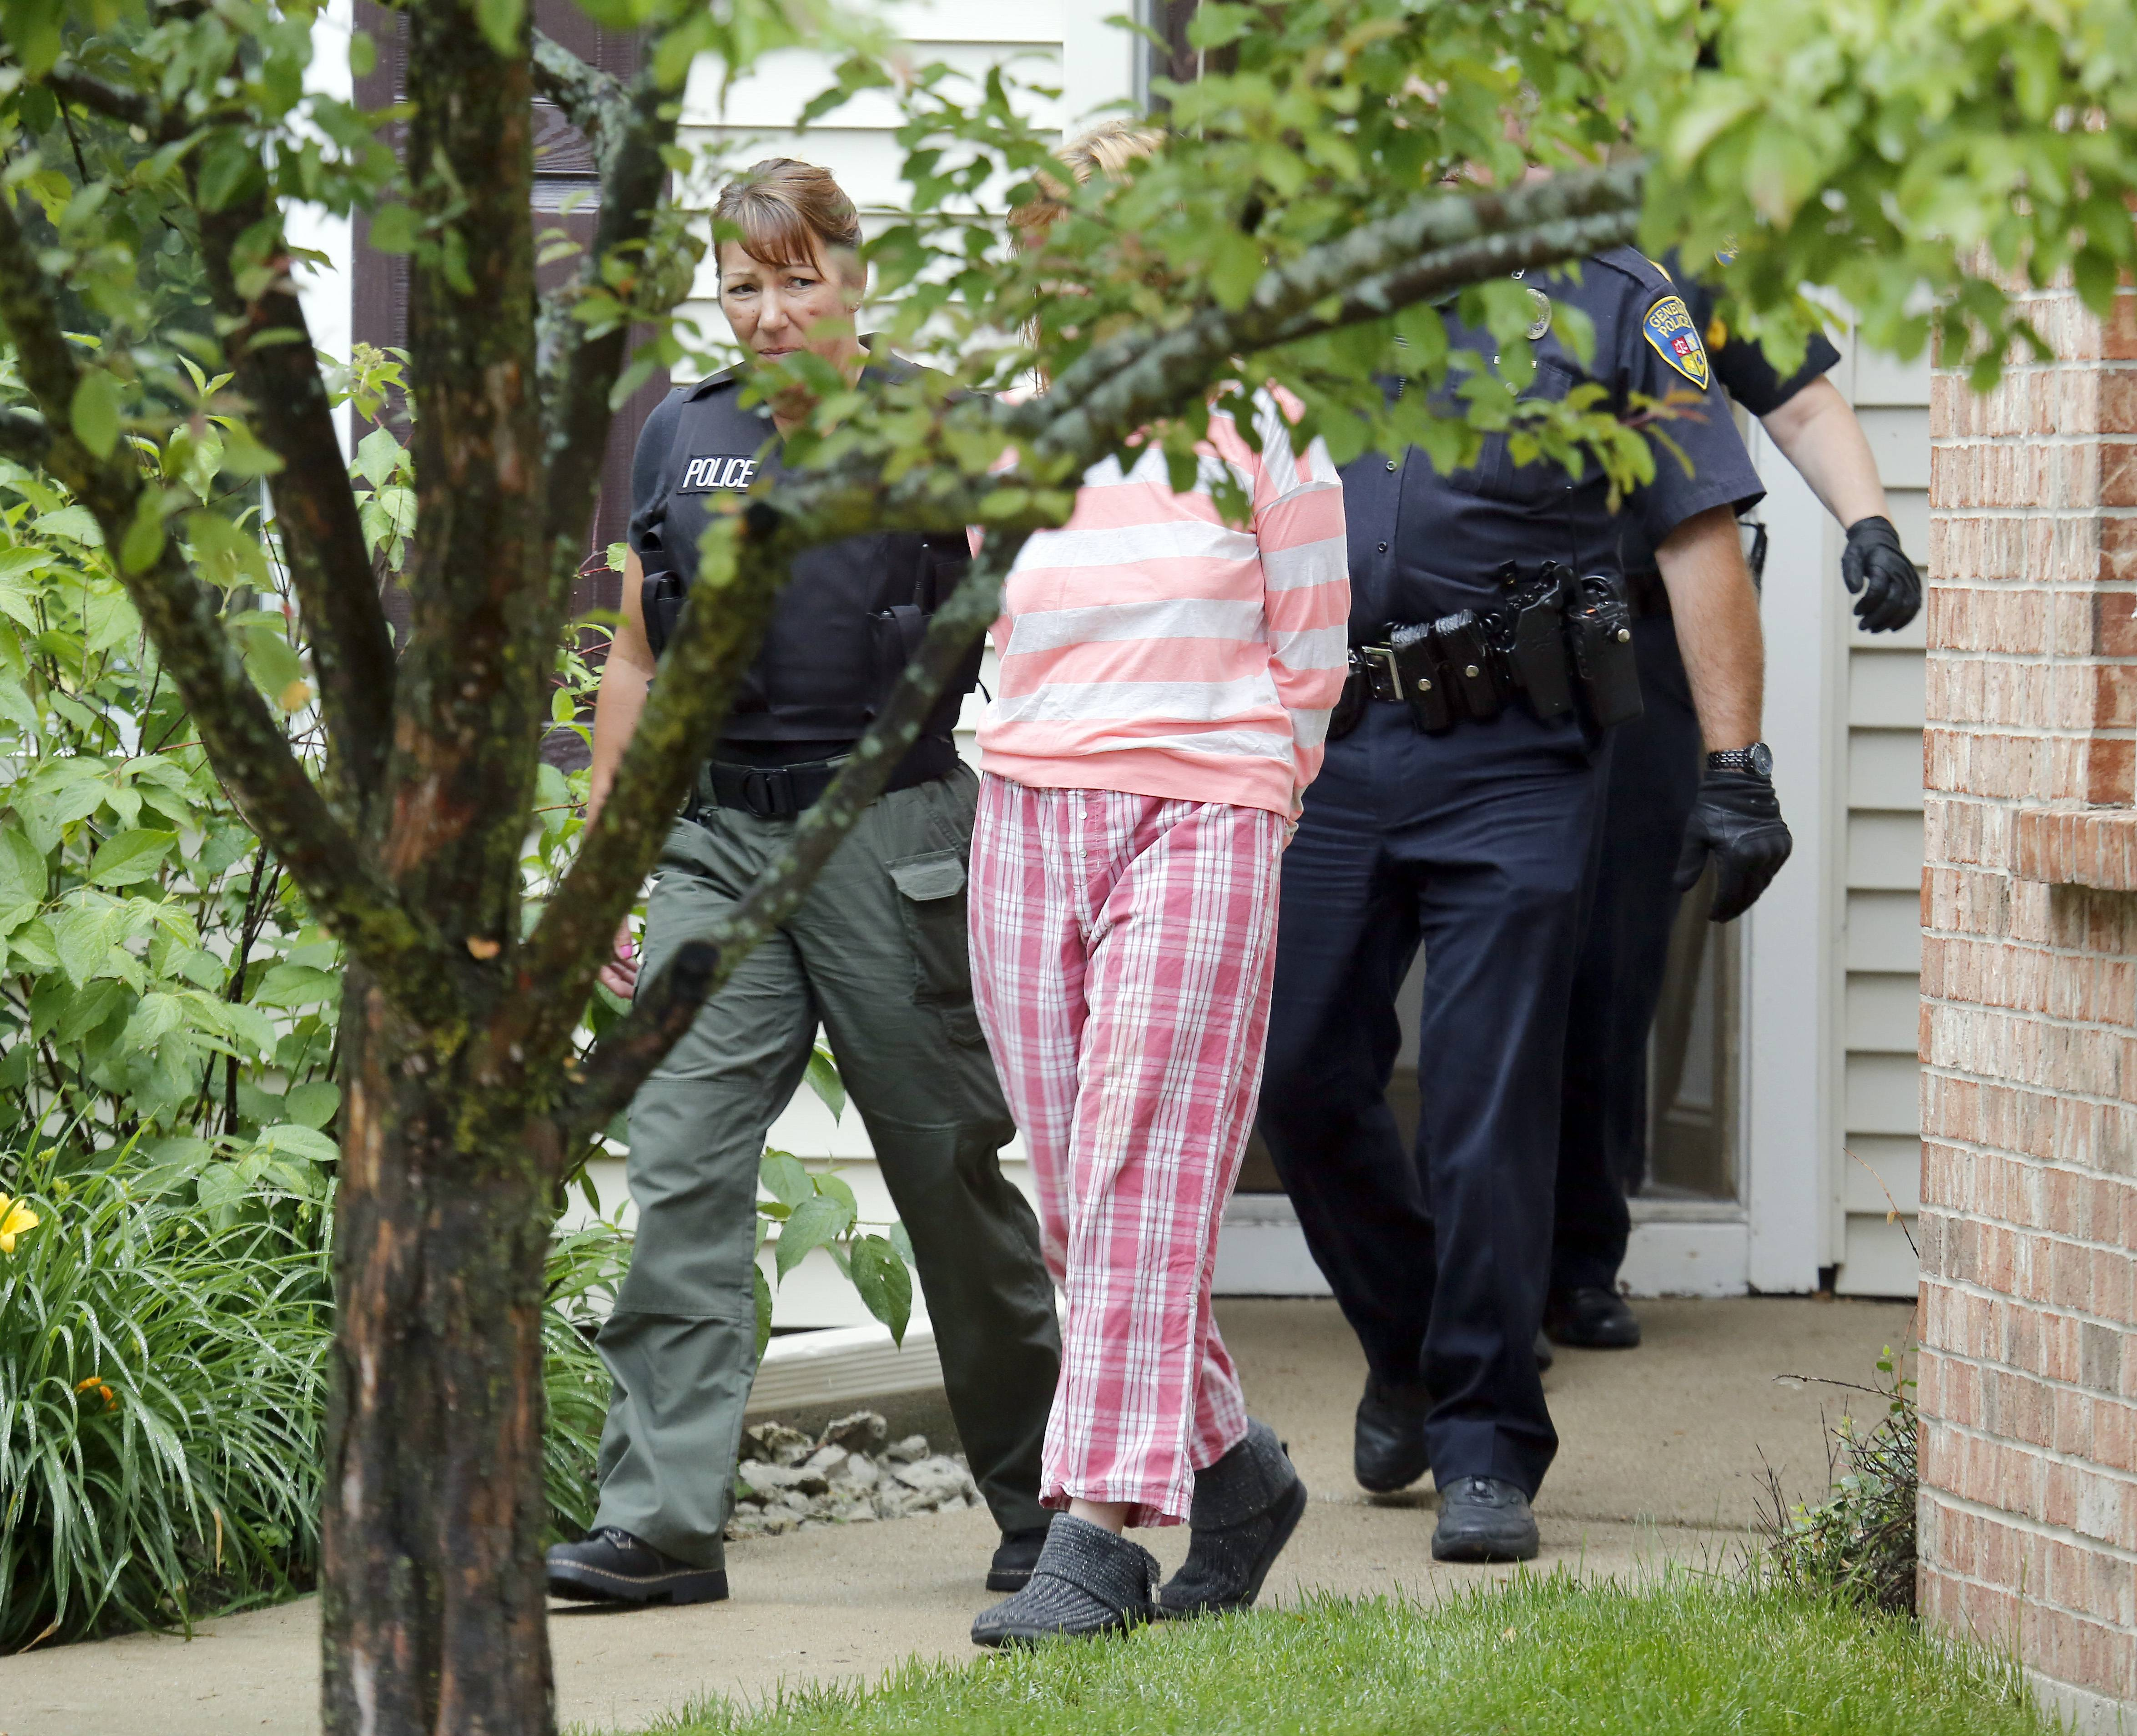 Police remove Kayla N. Magnuson, 22, of 353 Brittany Court in Geneva, from a building Wednesday at Ashford At Geneva Apartment Homes. Police said they were investigating her in connection with a series of robberies, the most recent of which was earlier in the day in Batavia.